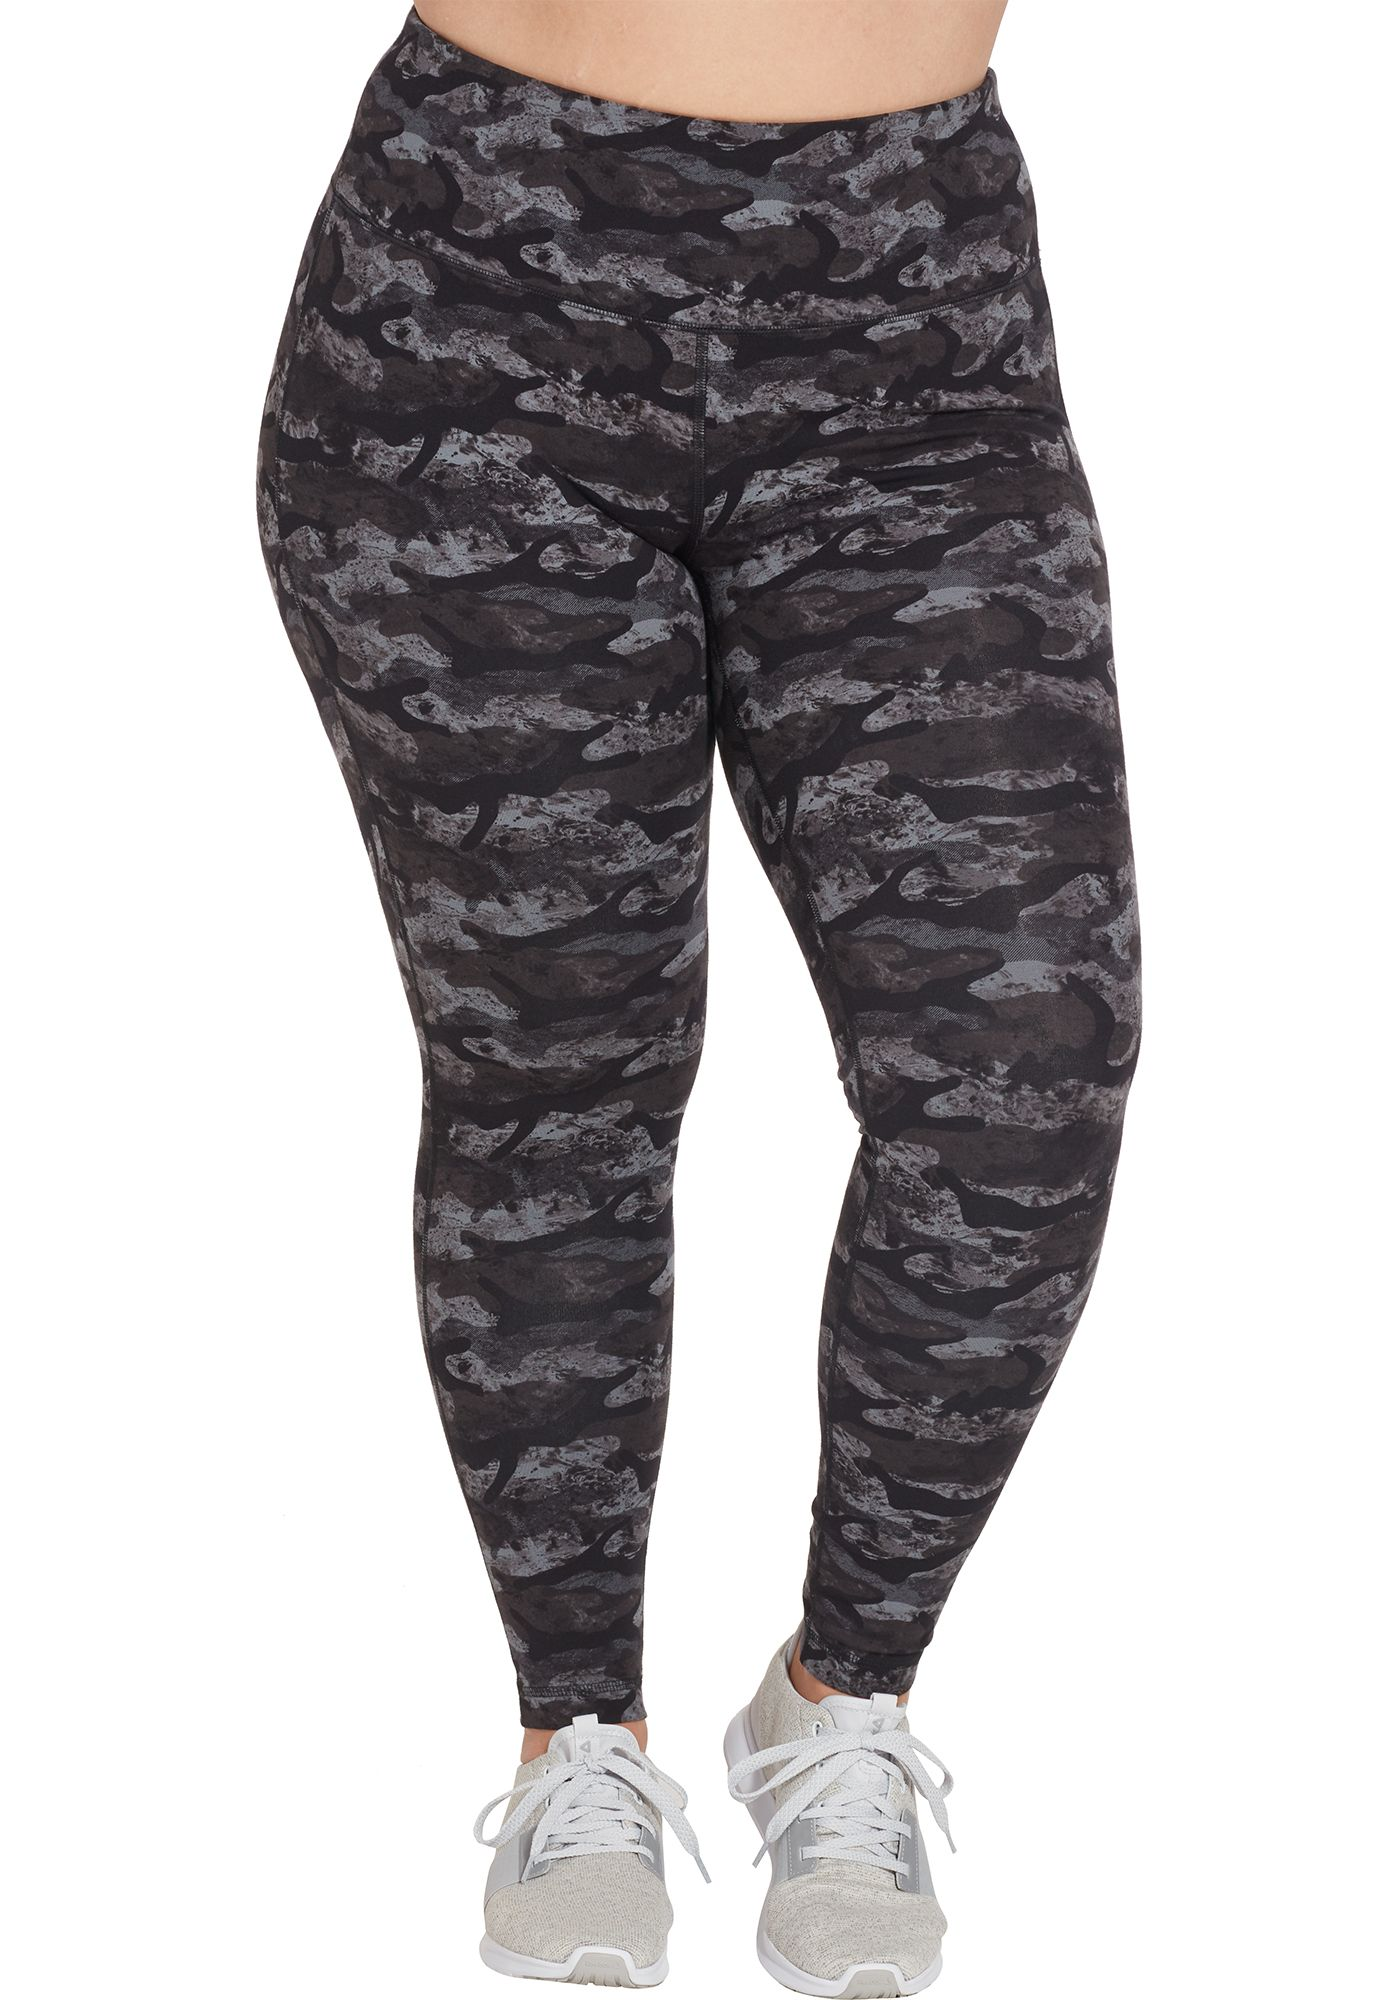 Reebok Women's Plus Size High Waisted Printed Stretch Cotton Leggings